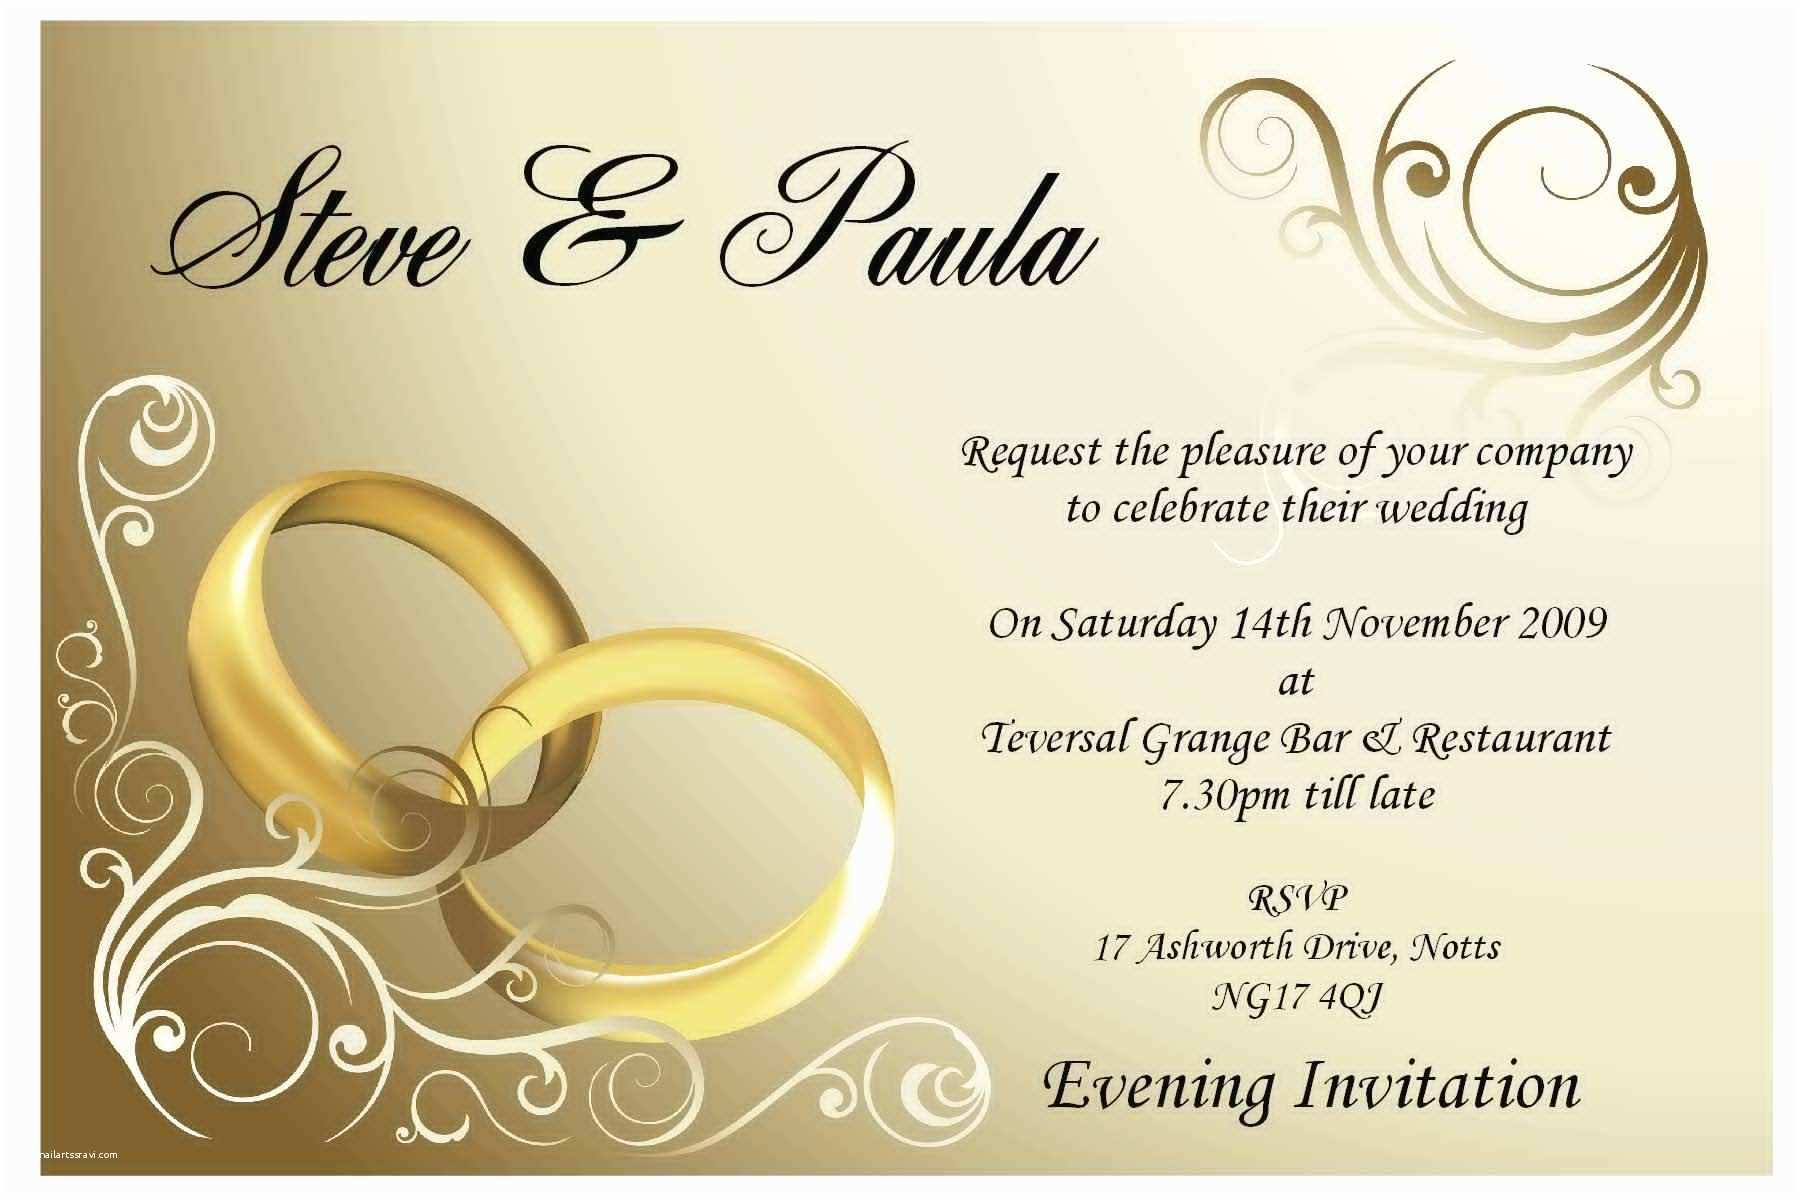 Small Wedding Invitation Cards Wedding Invitation Card Design Wedding Invitation Cards